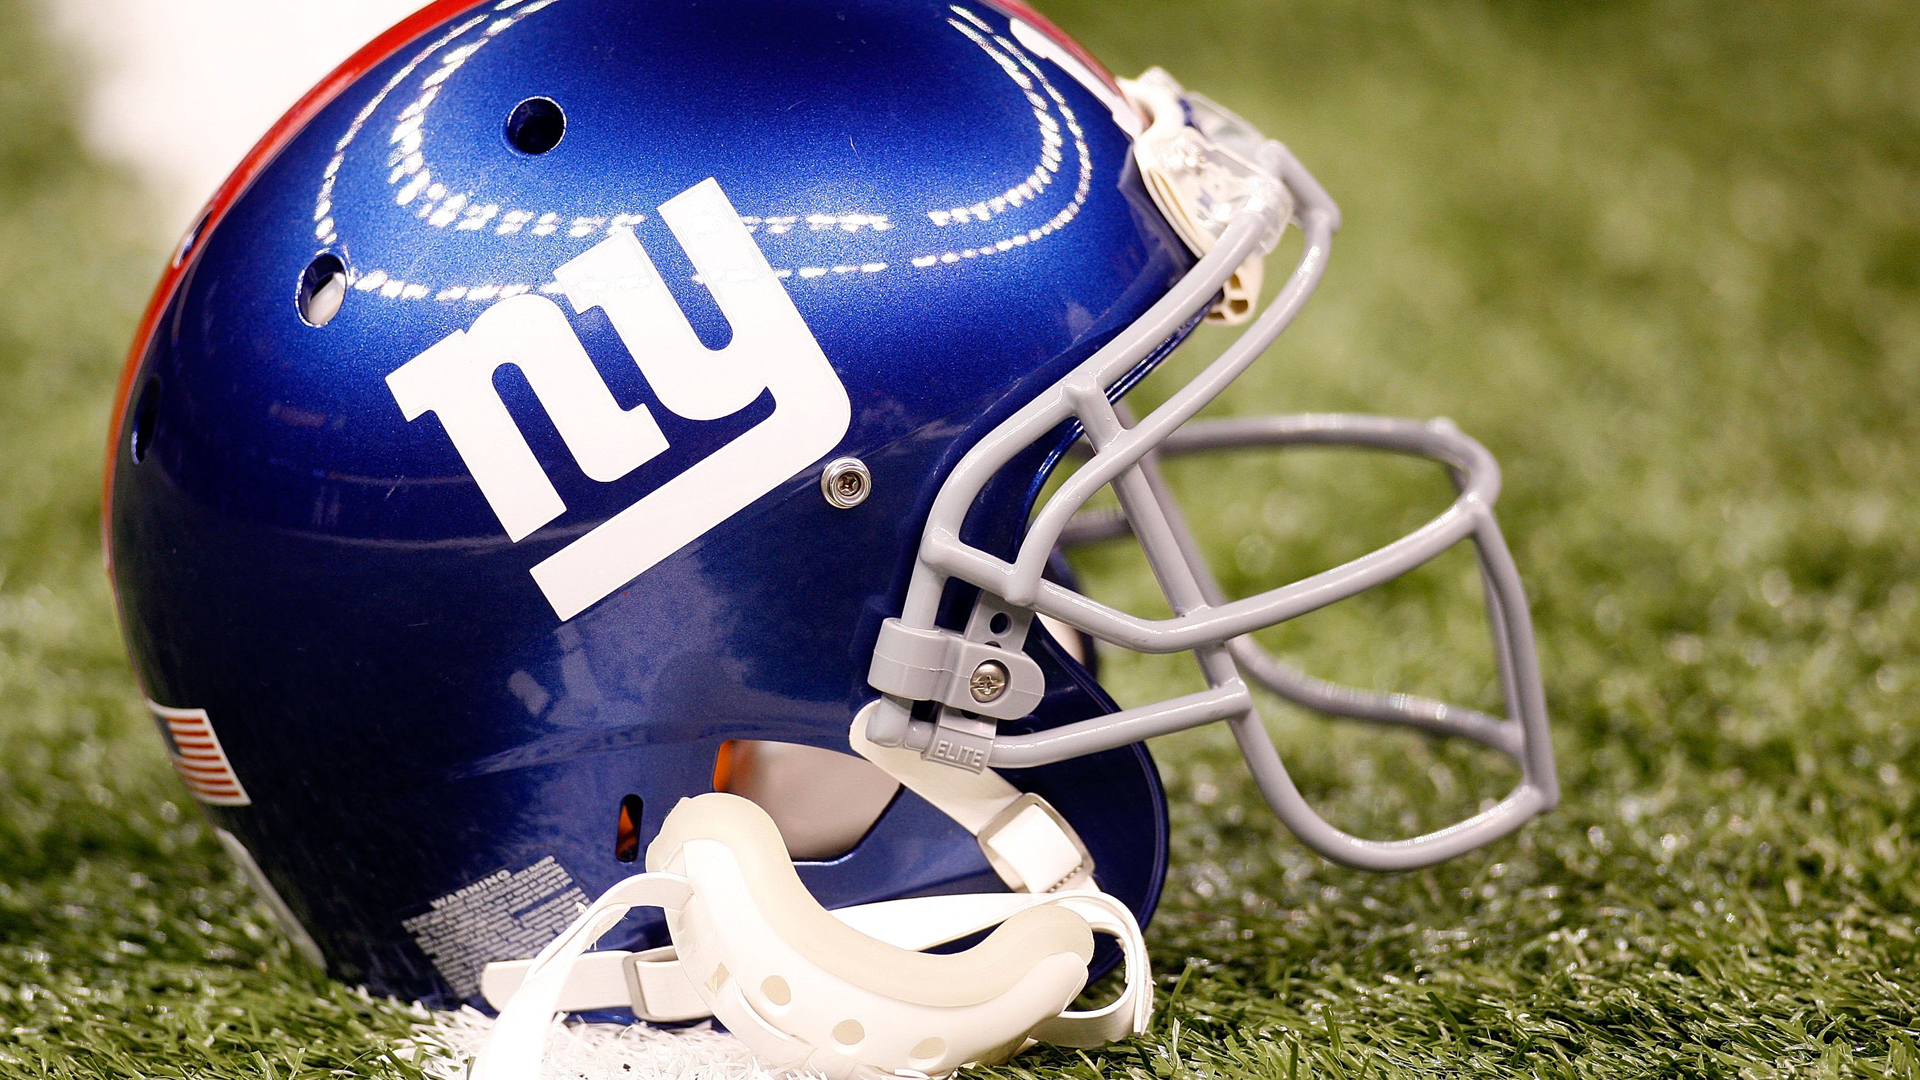 New York Giants Wallpapers Images Photos Pictures Backgrounds HD Wallpapers Download Free Images Wallpaper [1000image.com]